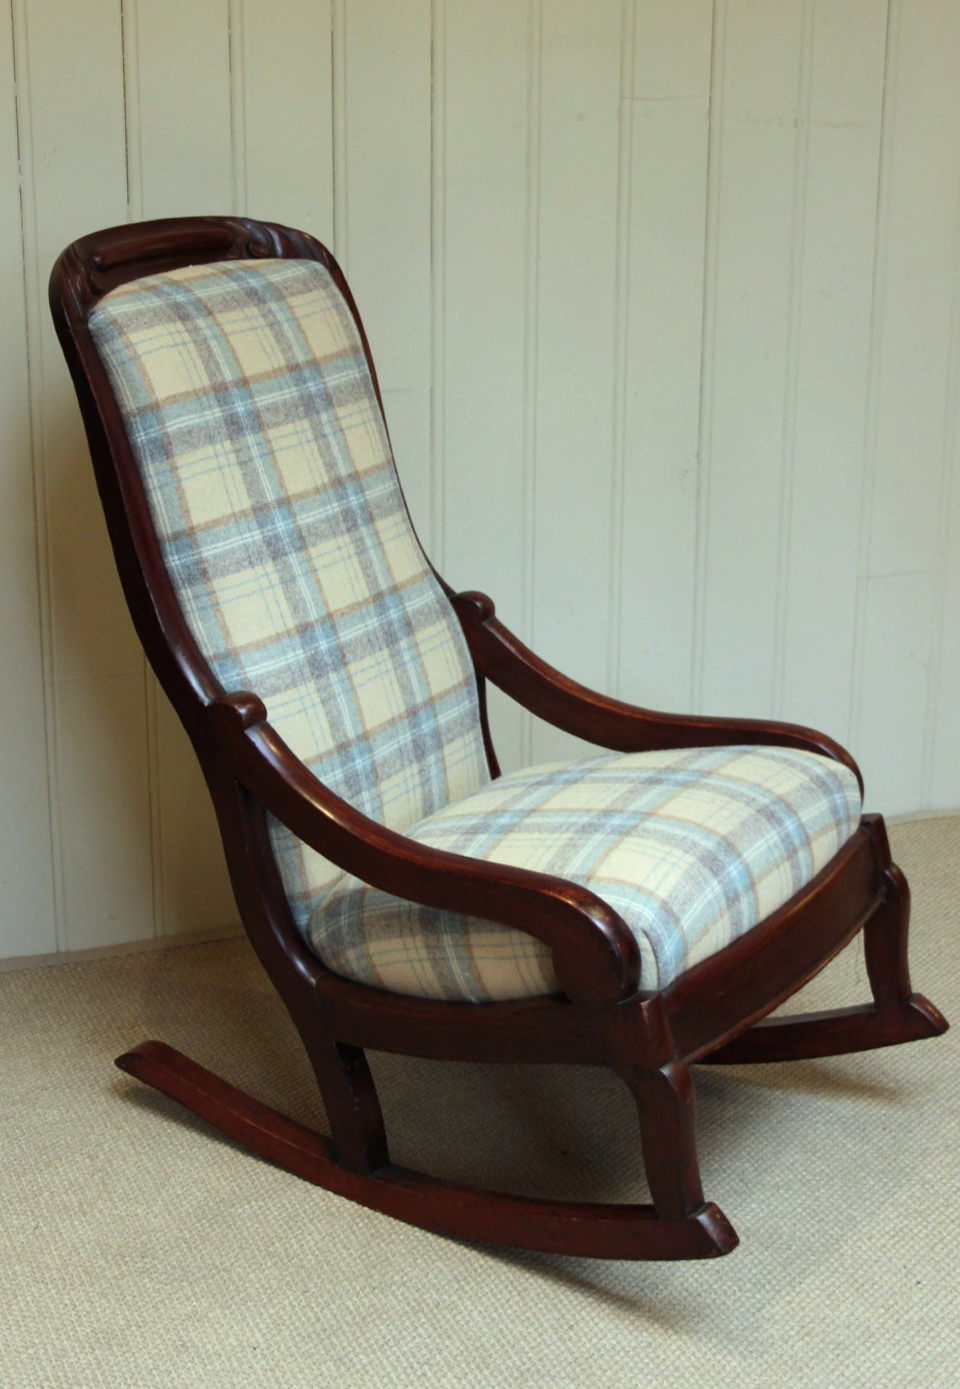 Upholstered Rocking Chair Uk